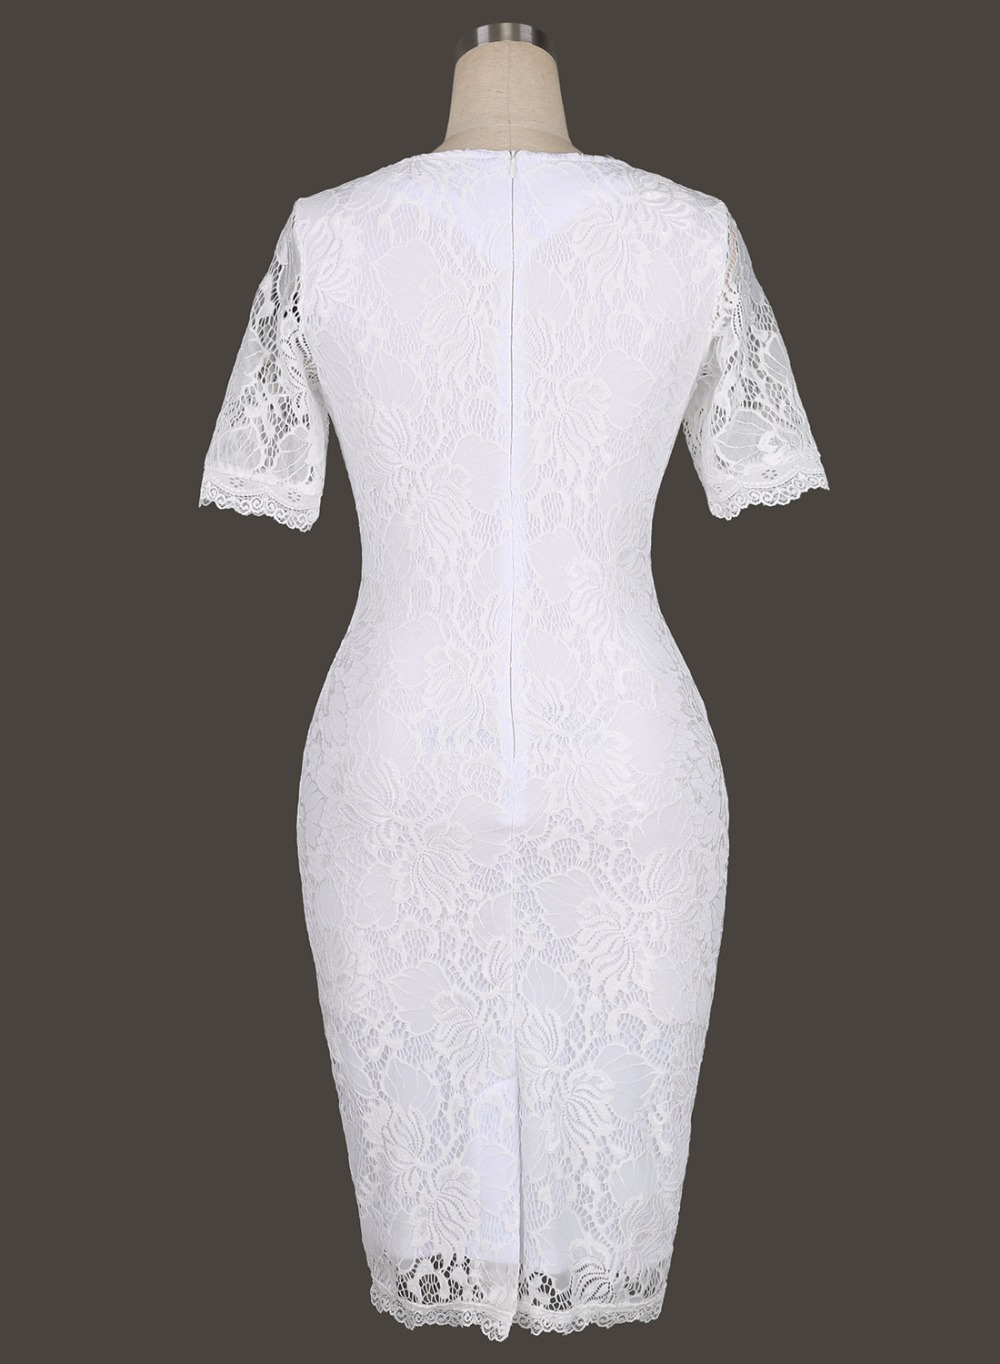 Womens Elegant Delicate Floral Lace Casual Party Evening Bodycon Special Occasion Bridemaid Mother of Bride Dress